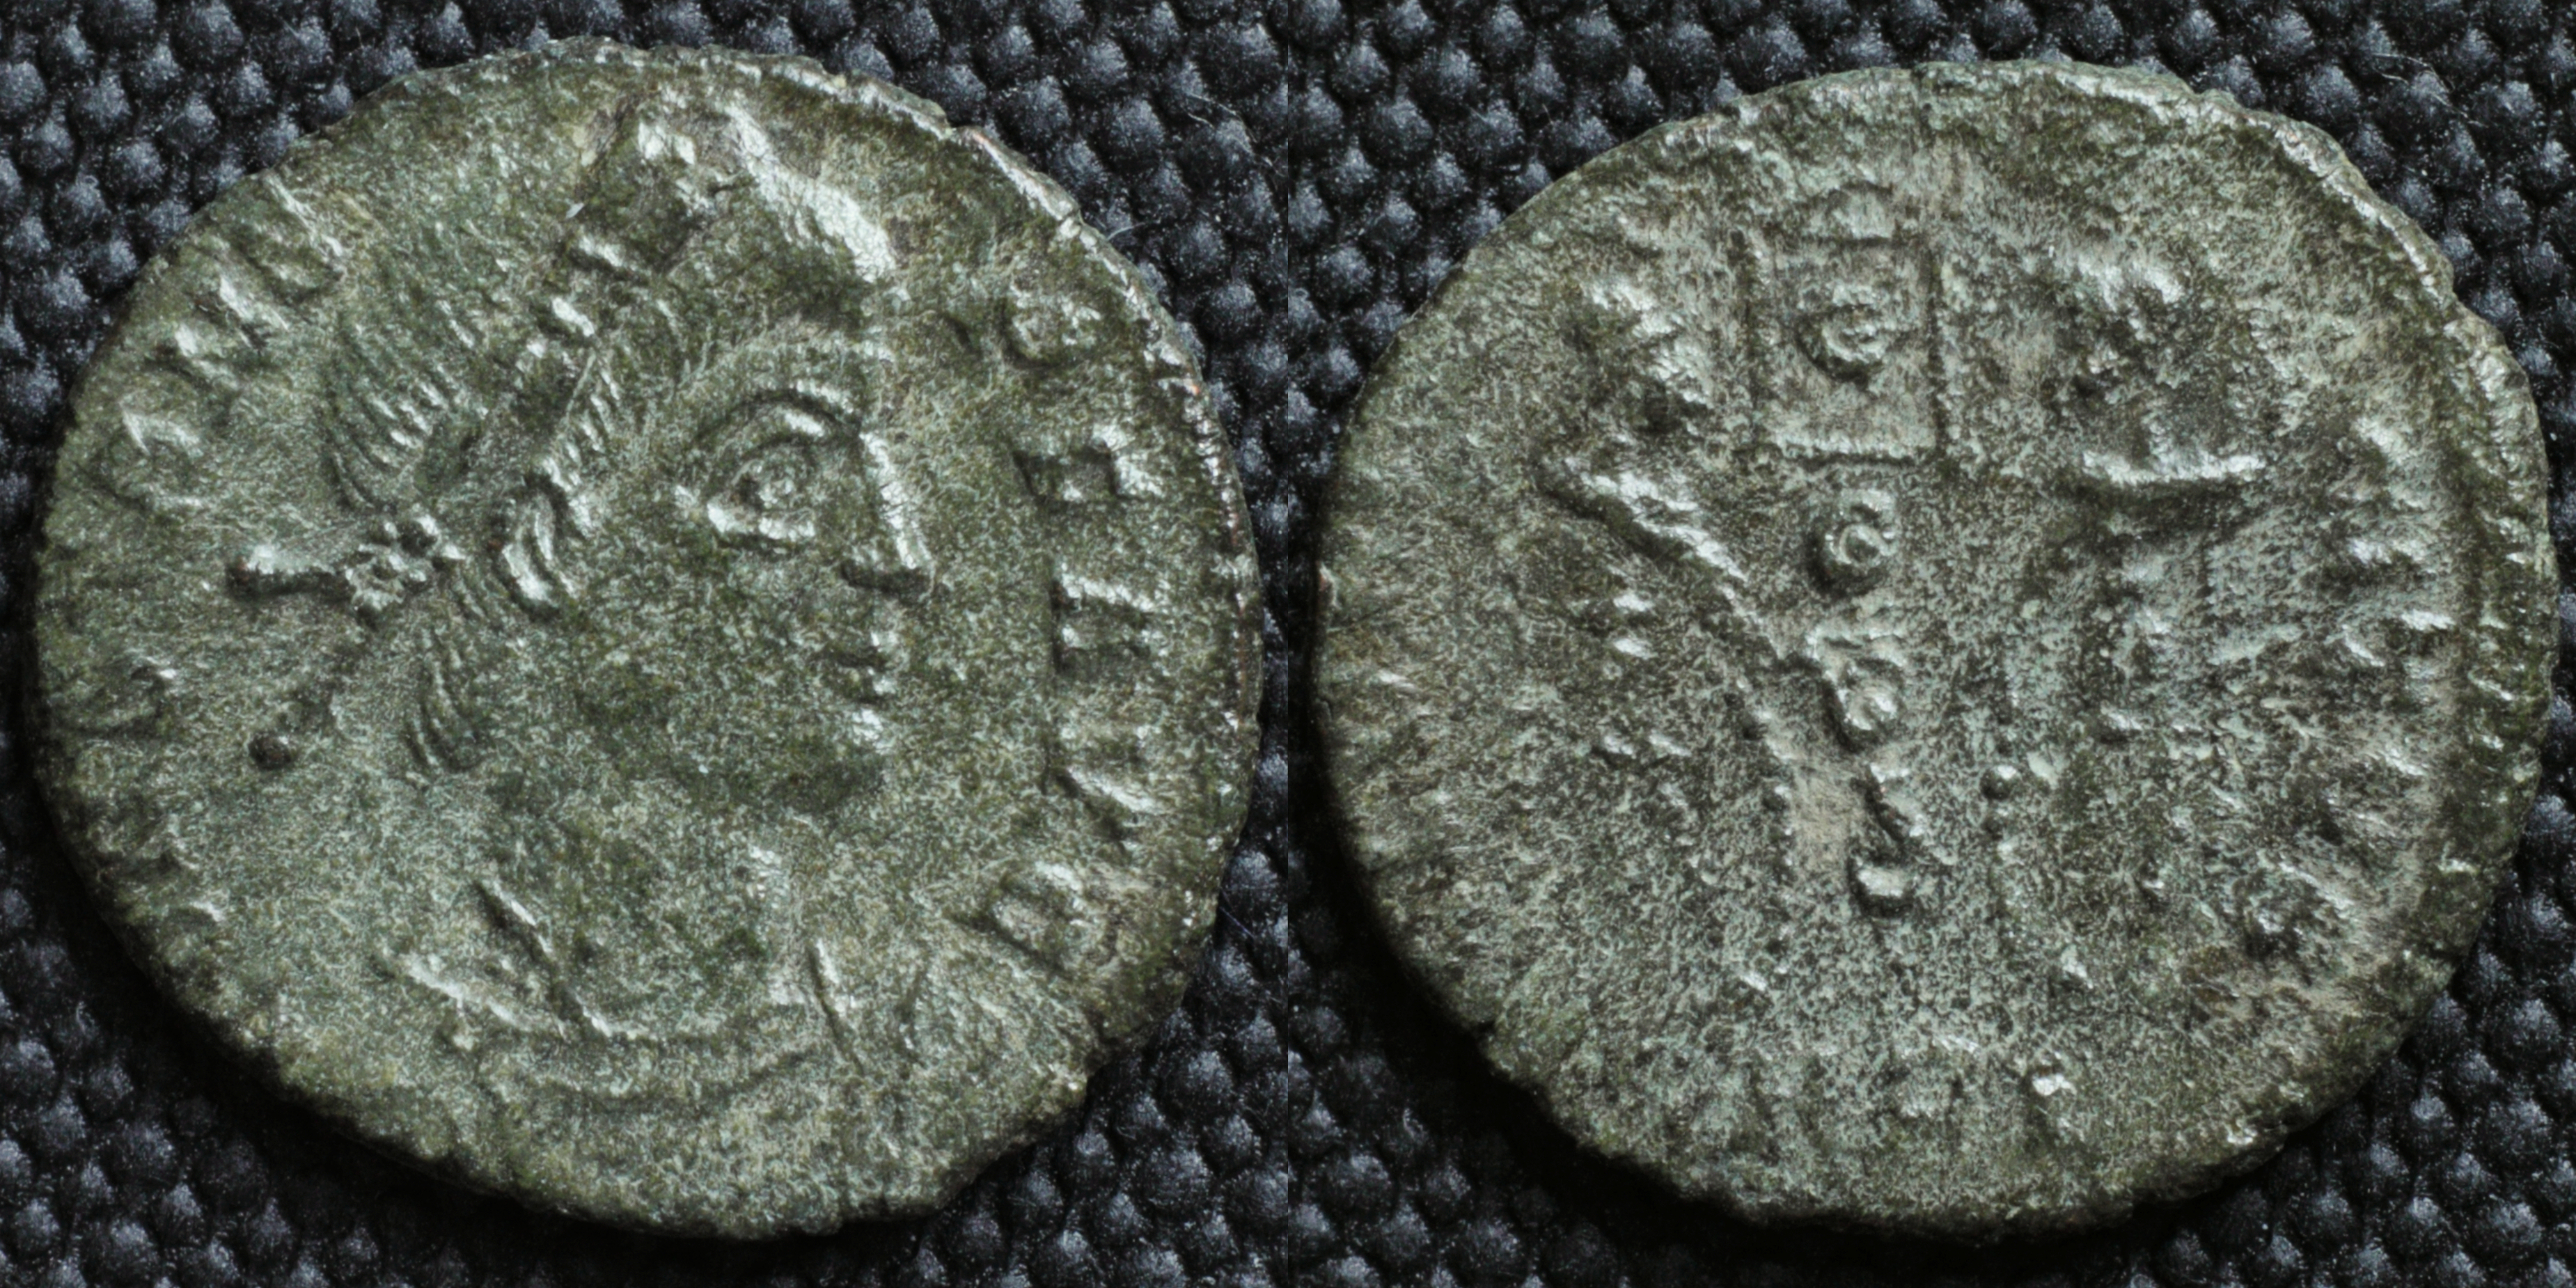 /Files/Images/Coinsite/CoinDB/76_Constans_SARL.jpg